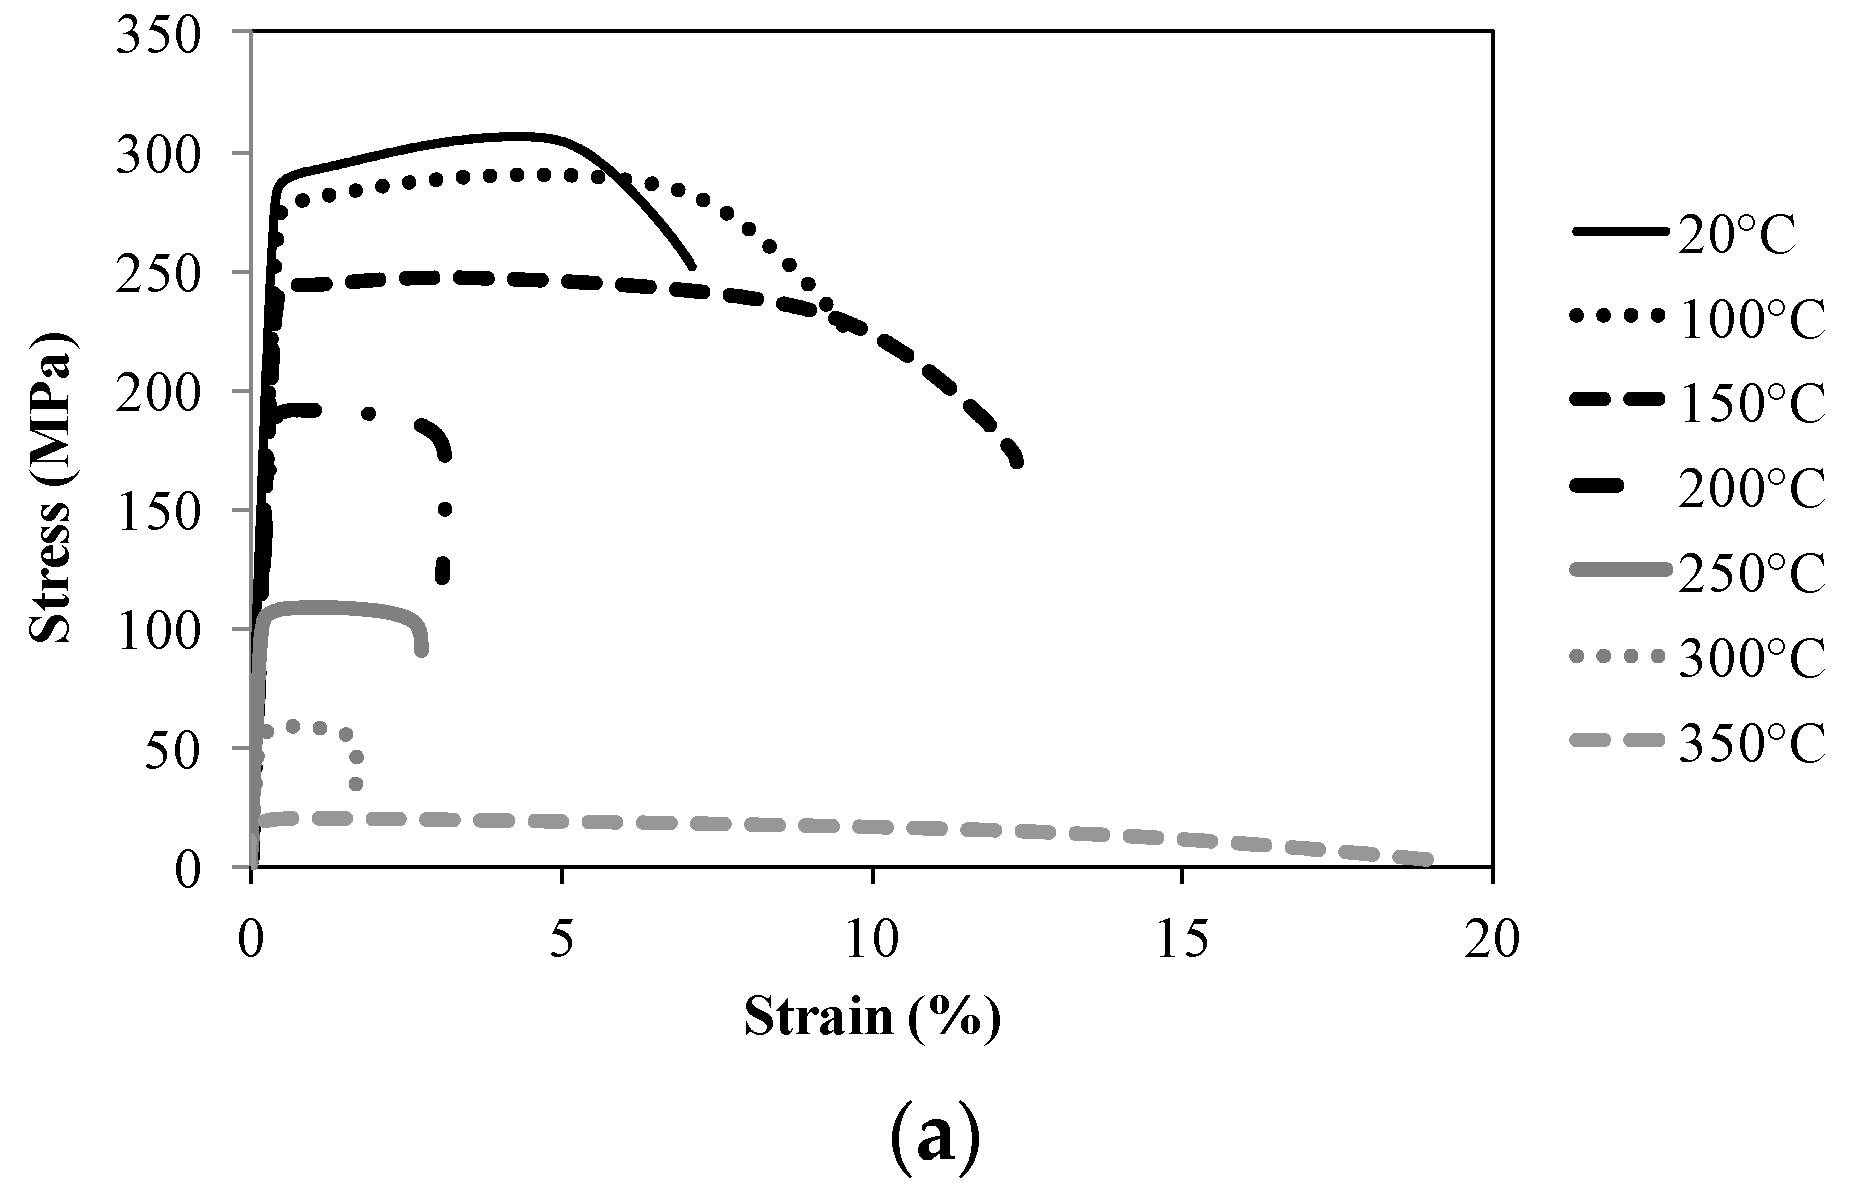 Metals Free Full Text Experimental Analysis Of The Behaviour Stress Strain Curve Relationship Diagram And Explanation 07 00126 G002a G002b Figure 2 Stationary Curvestest